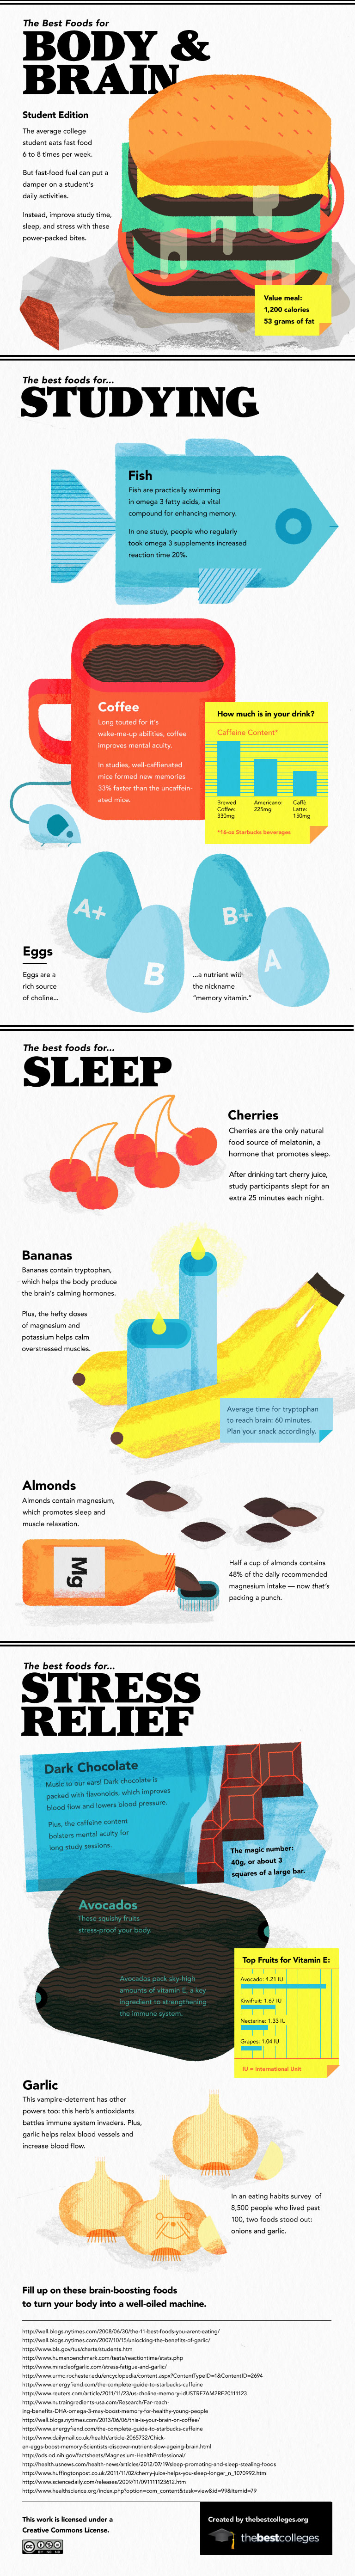 Best foods for Brain and body